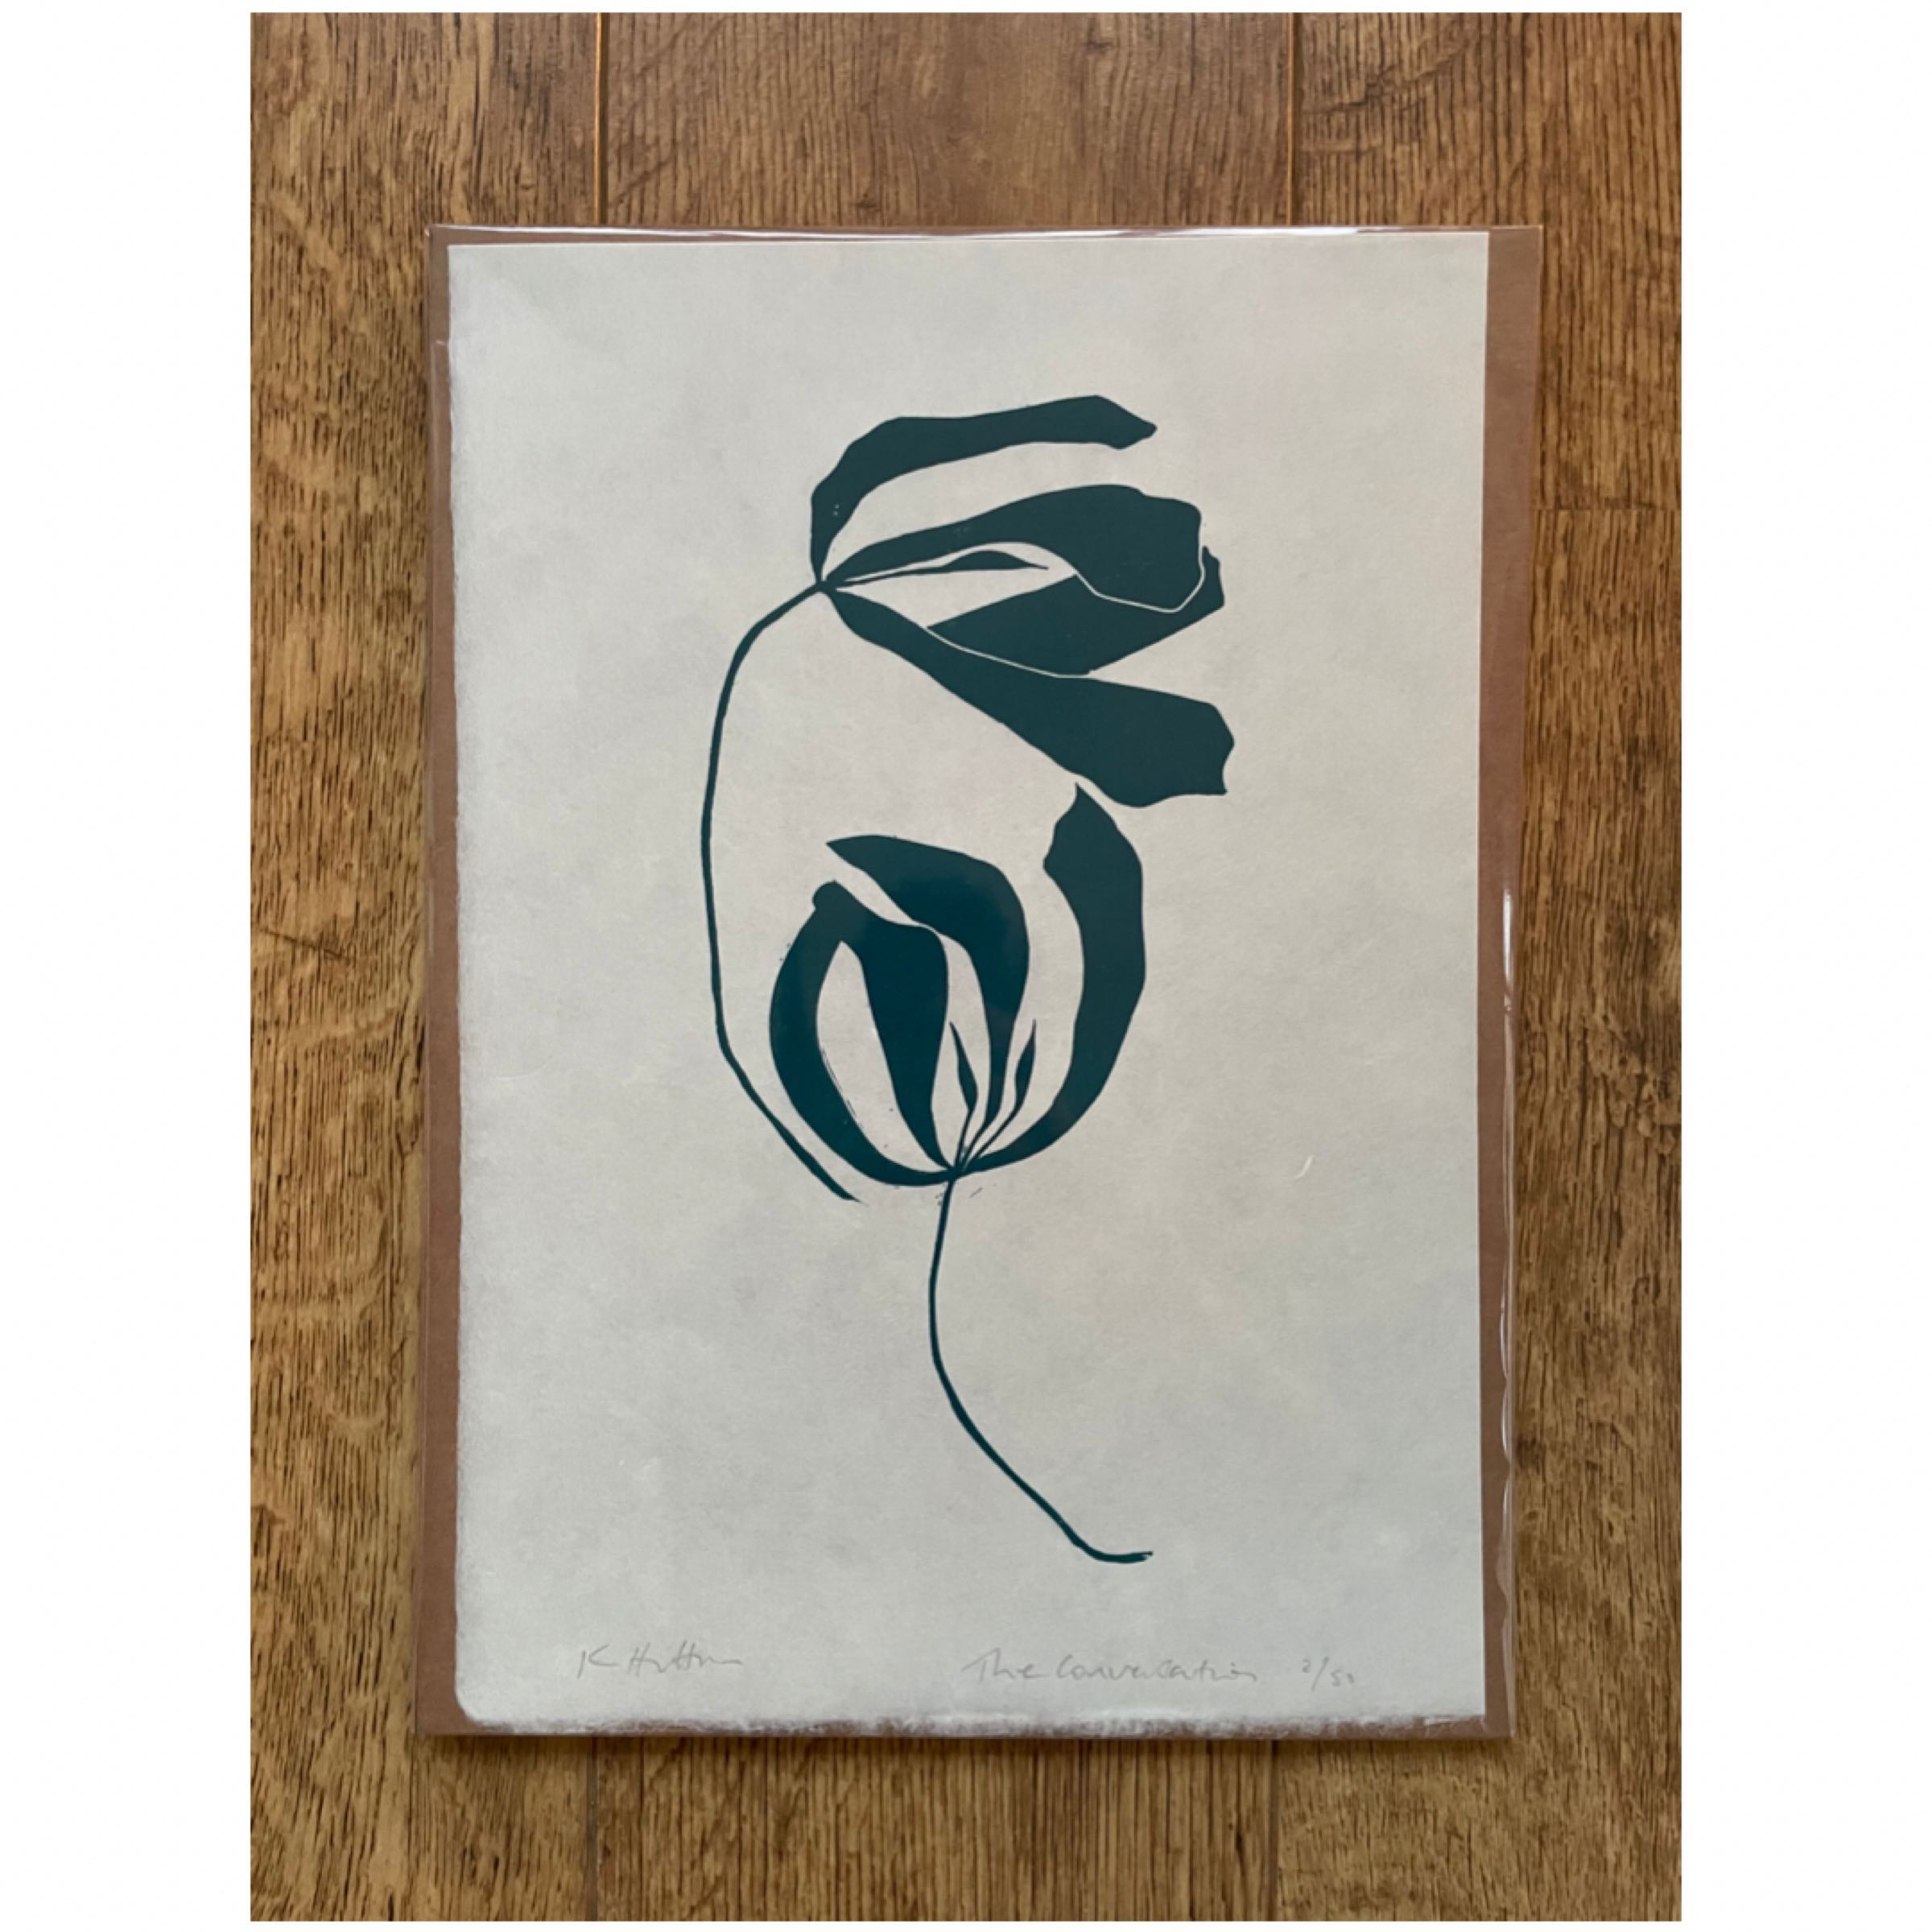 The Conversation. Lino print of two tulips in Teal by Kathy Hutton